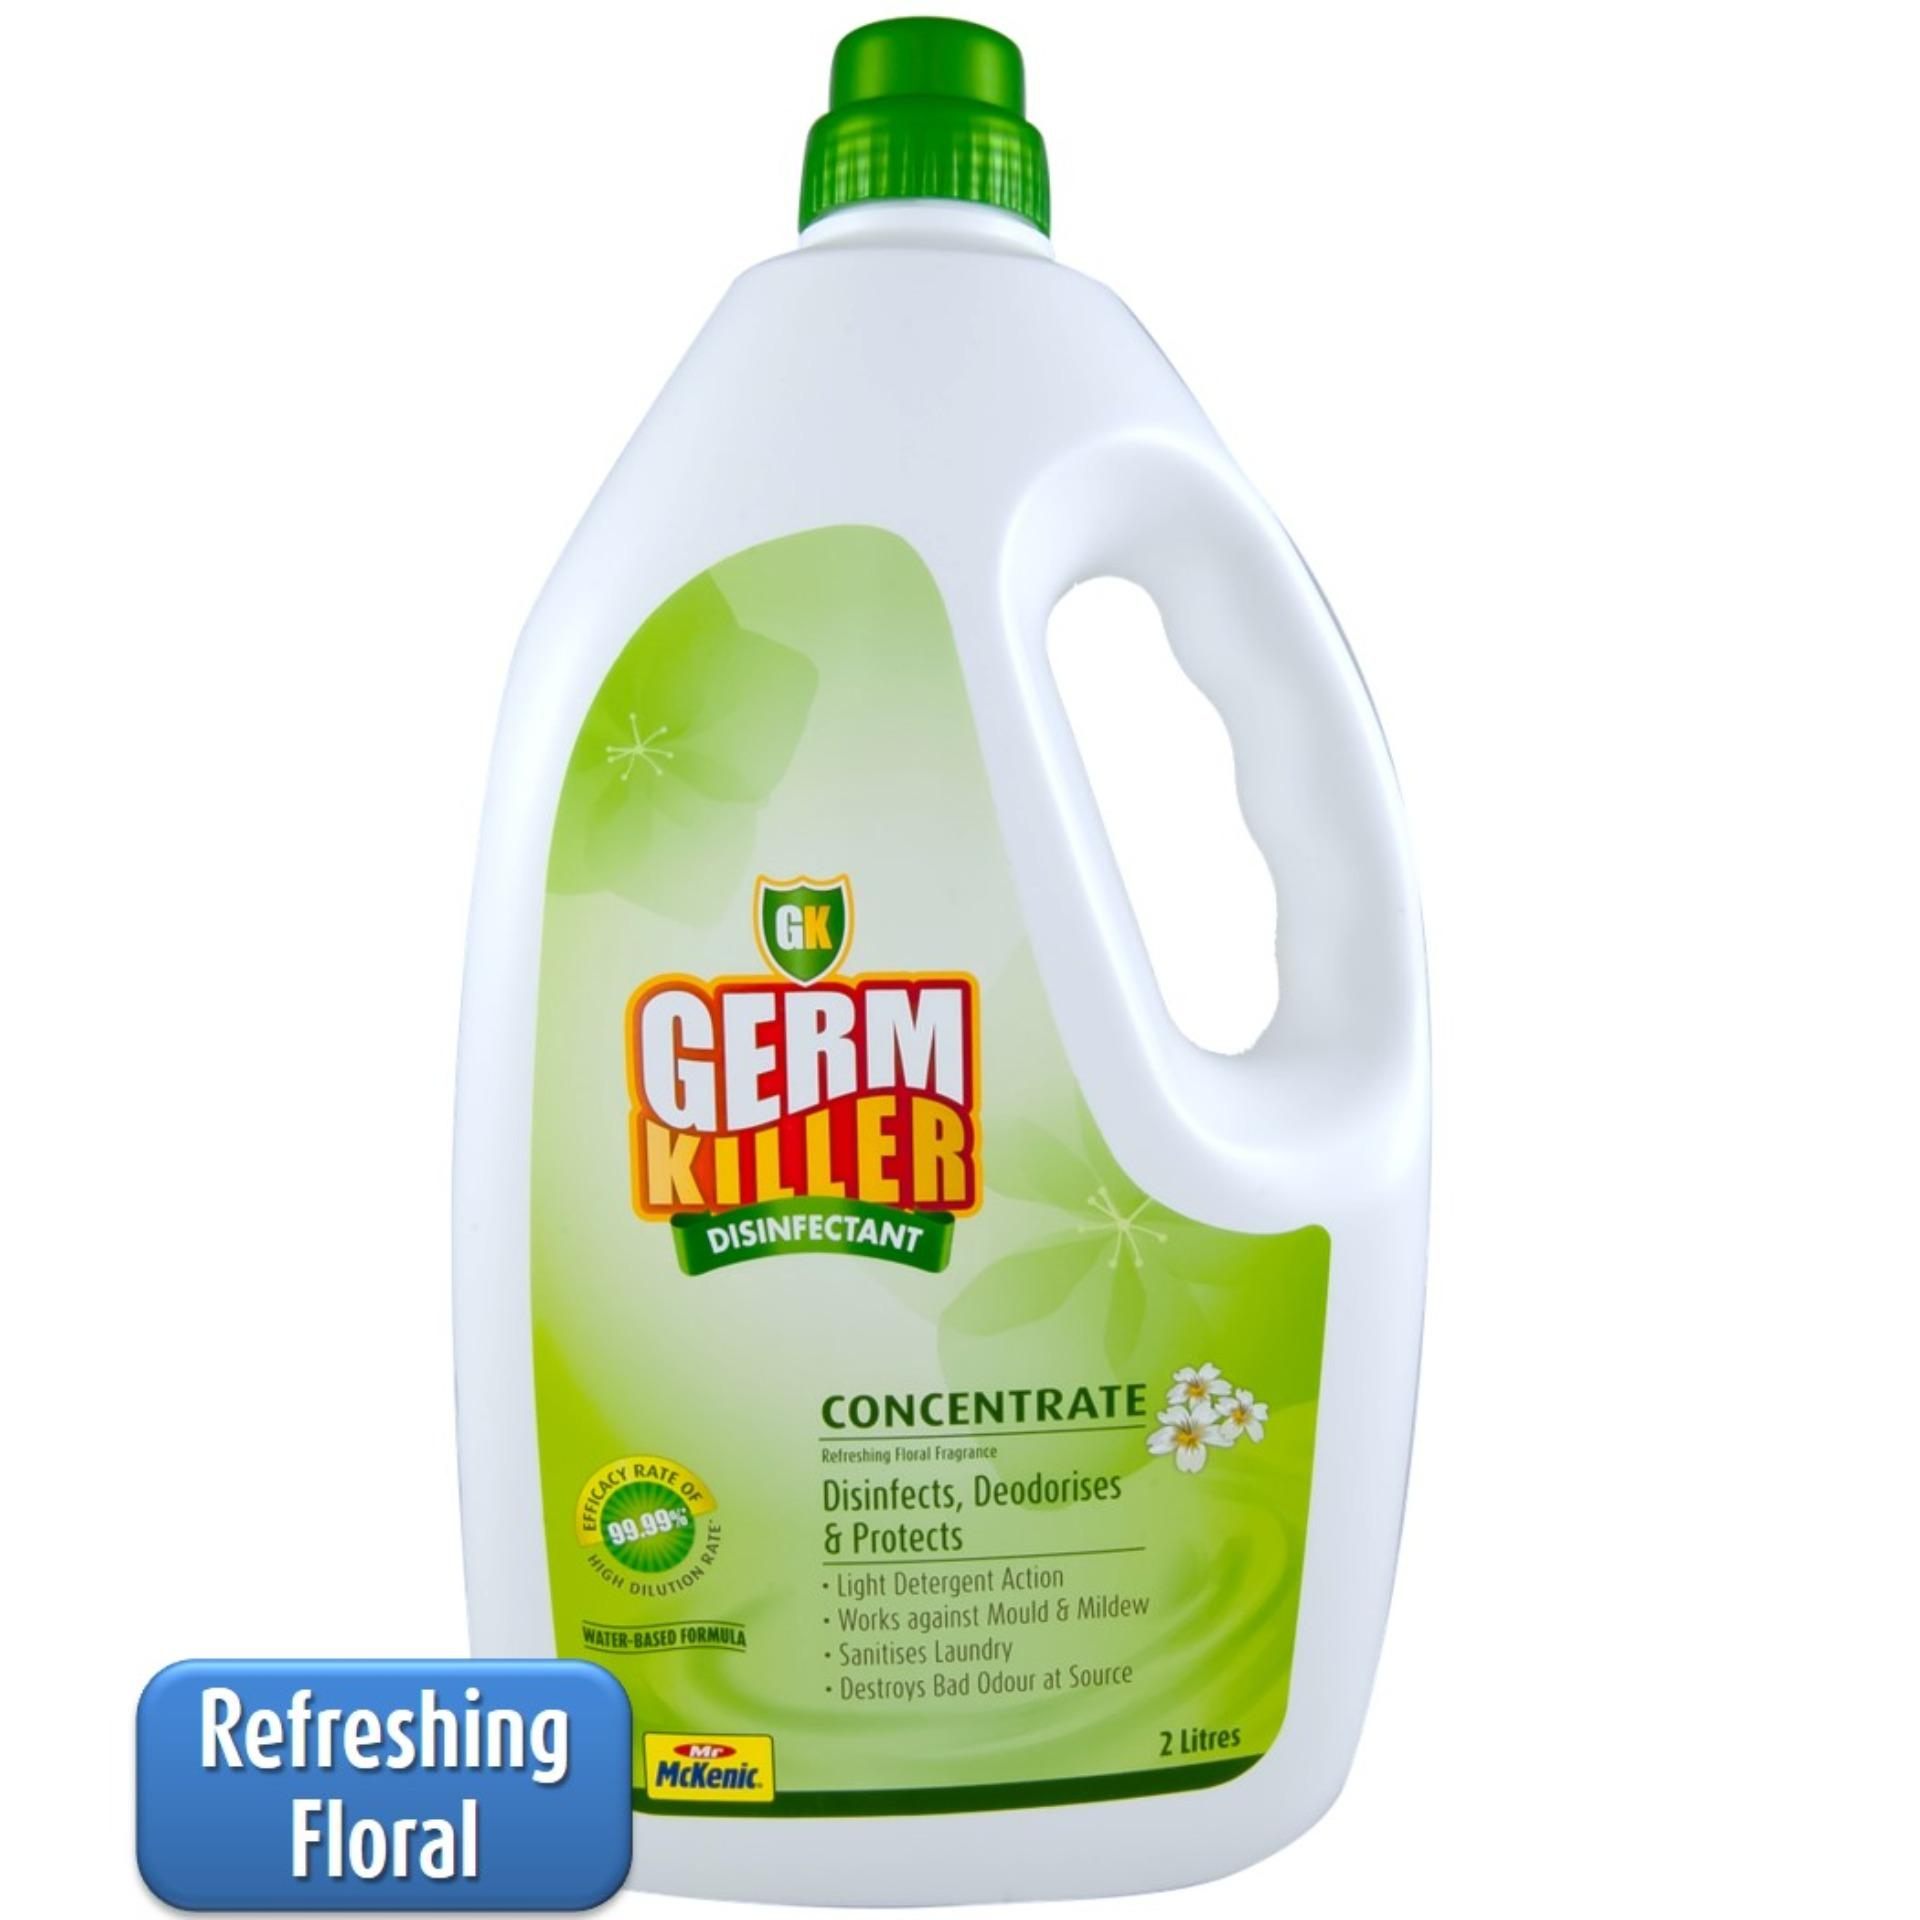 Buy Gk Germkiller Gk Concentrate™ Floral 2L Cleans Protects You And Your Loved Ones From Harmful Germs High Dilution Rate For Use At Home And For Laundry Green Label Product Foodsafe Refreshing Floral Fragrance Gk Germkiller